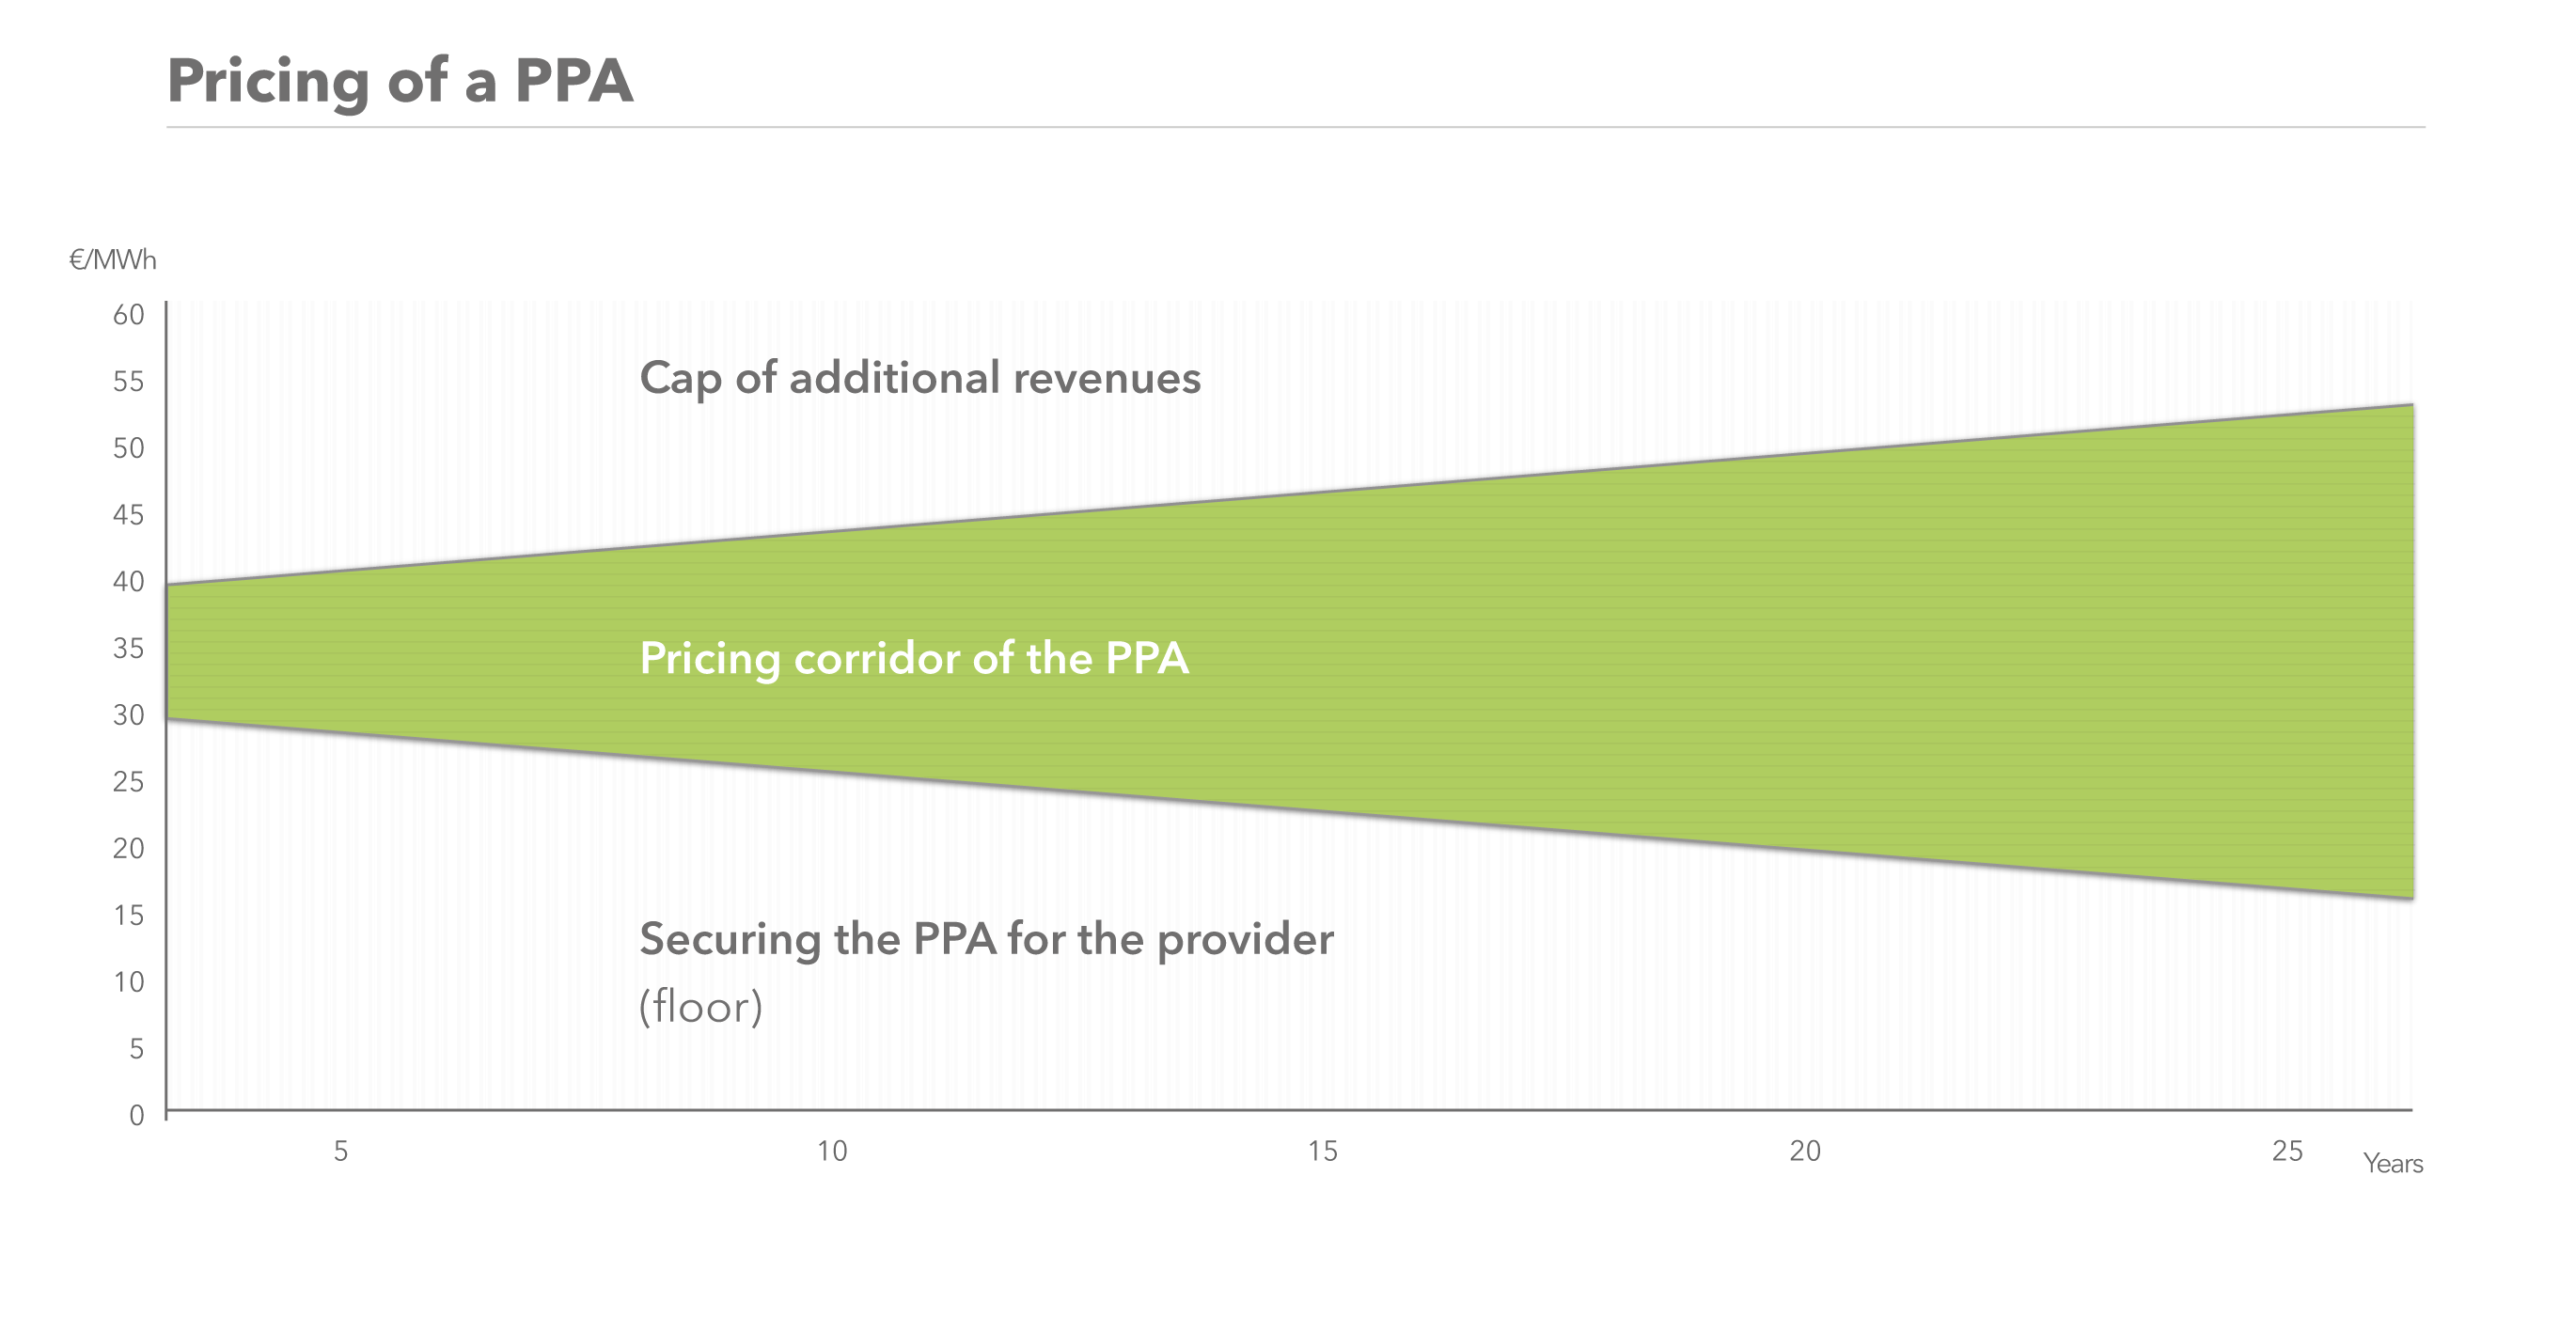 How to price a PPA (Power Purchase Agreement).